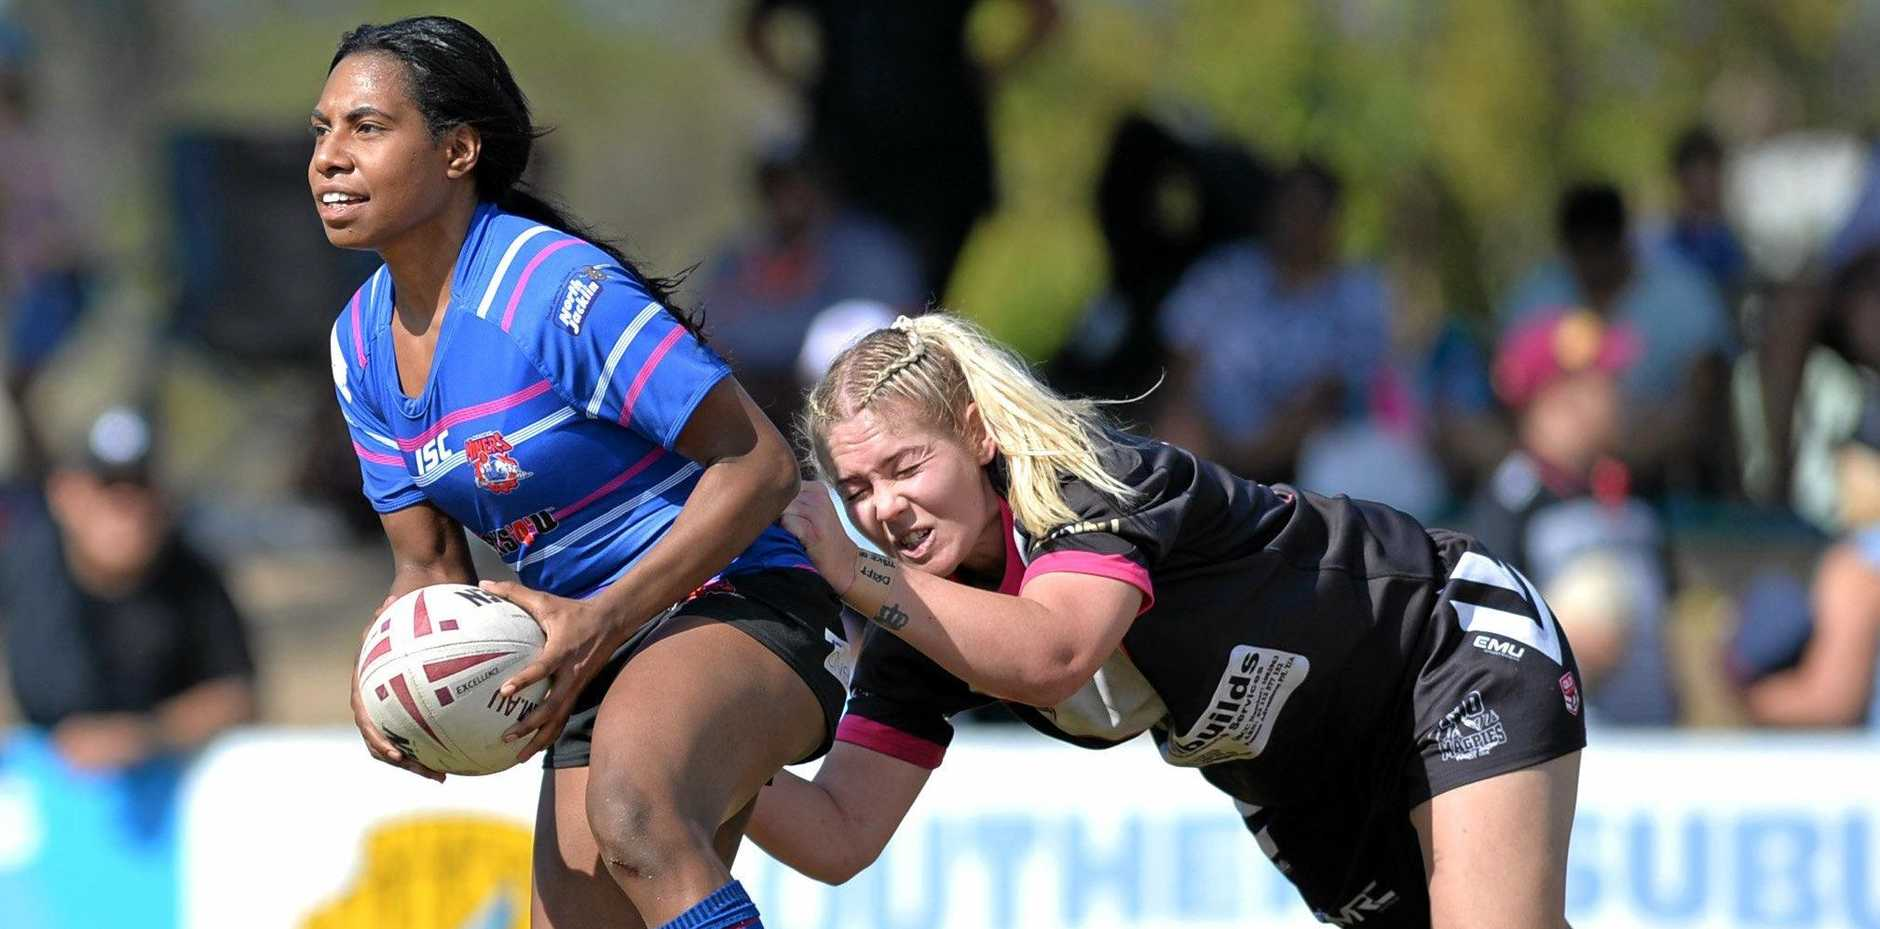 The Magpies couldn't hold on as the Moranbah Miners advanced to the MDRL Women's grand final.